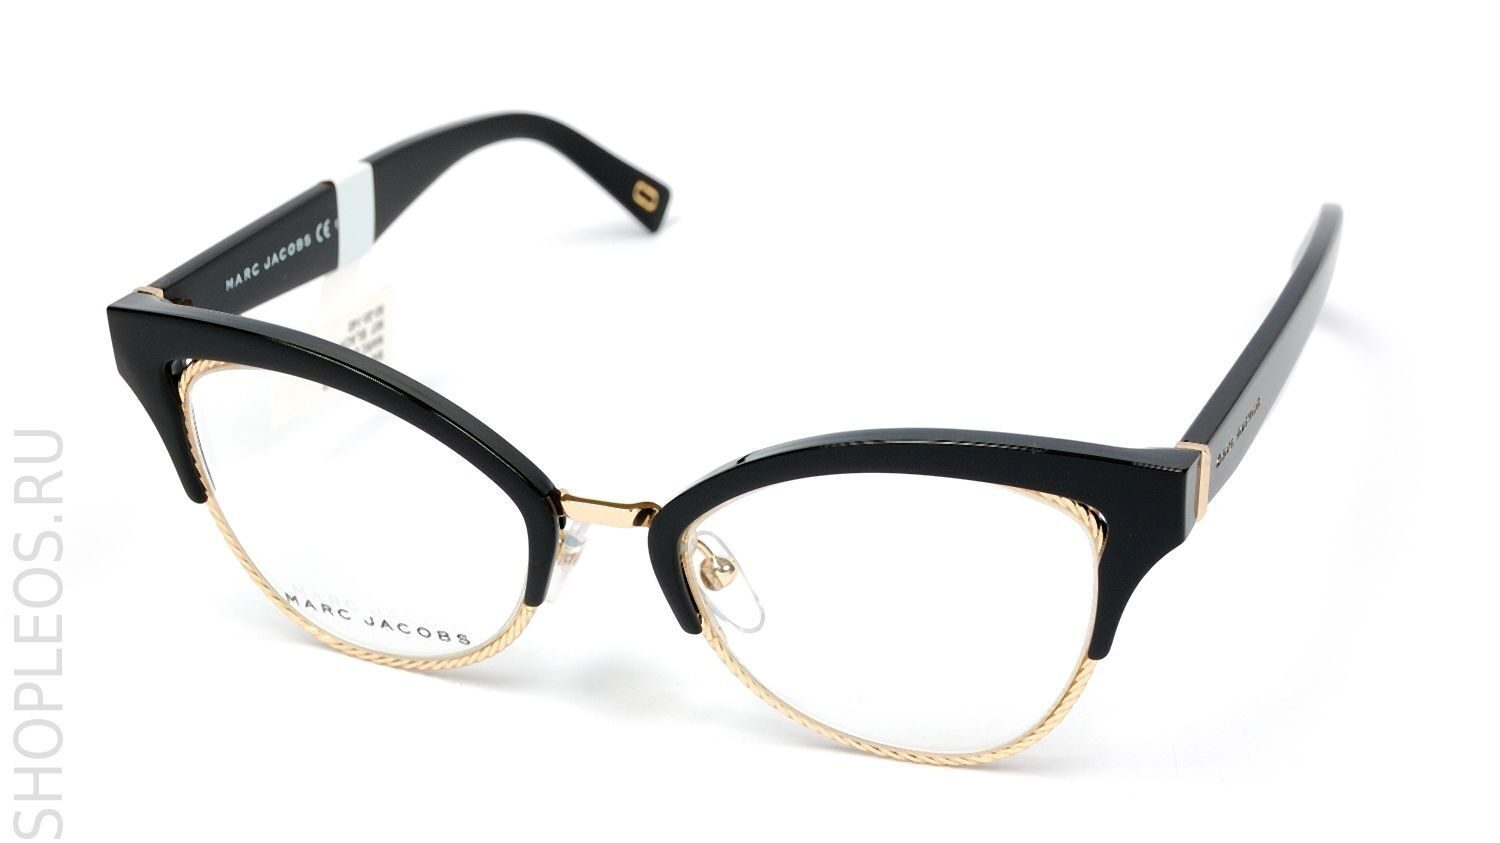 MARC JACOBS WOMAN MARC 216 807